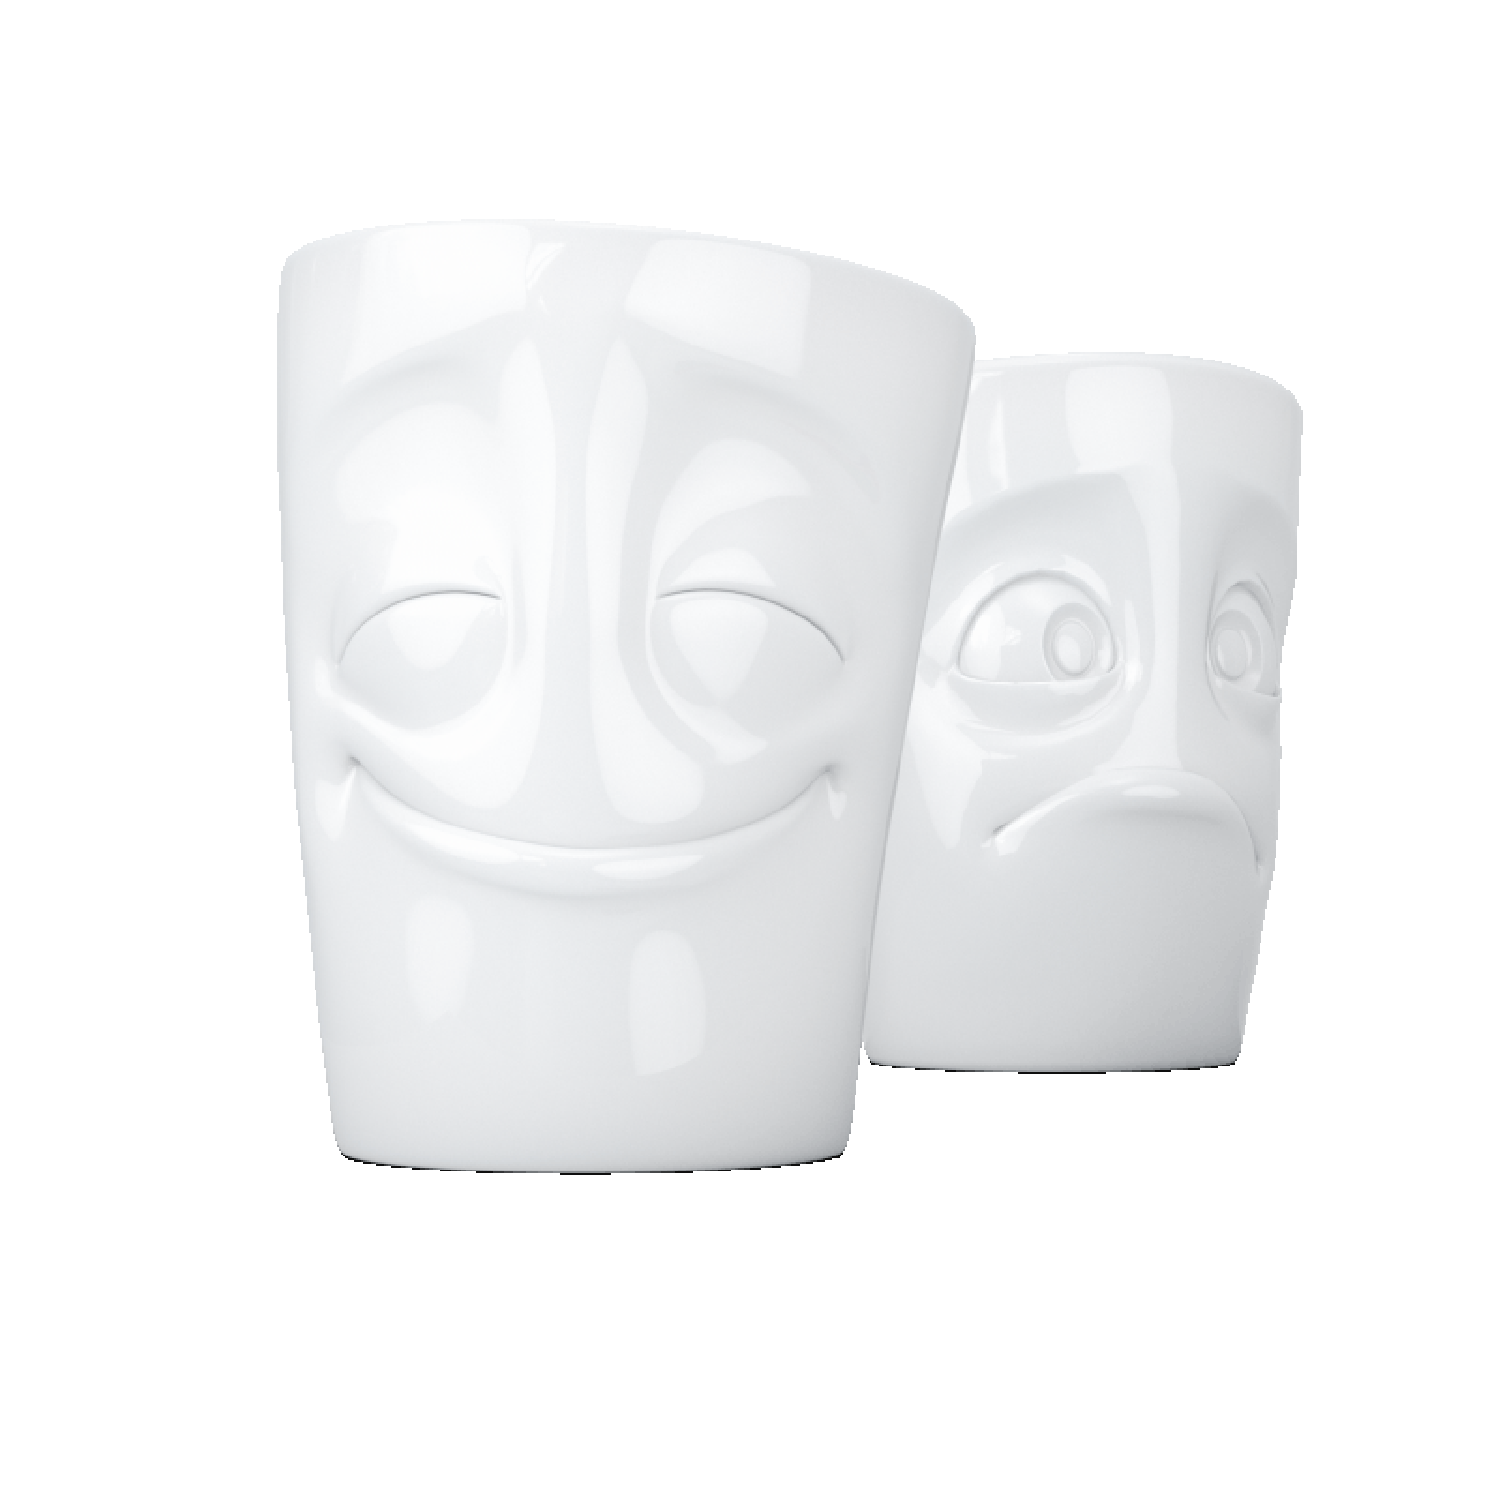 Porcelain Mug Set No. 2 Cheery & Baffled, white | 58 Products